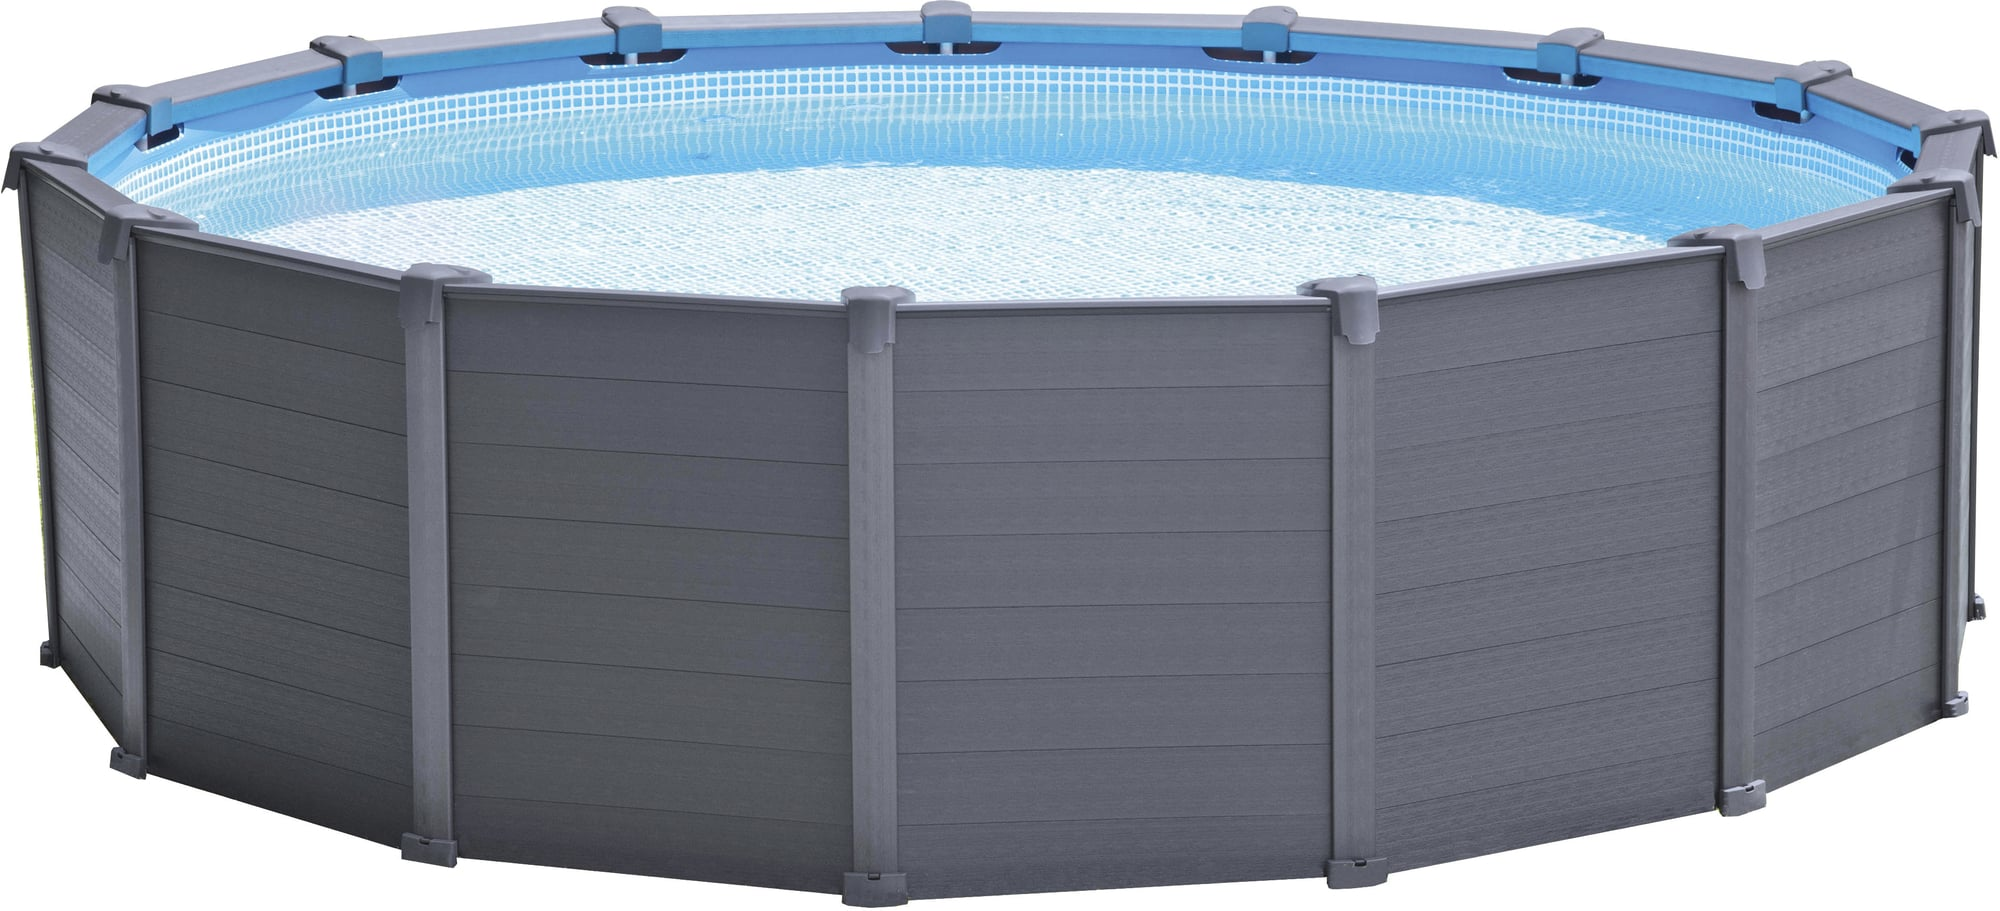 Pool Zubehör Shop Intex Frame Pool Graphit Ø 478 X 124 Cm